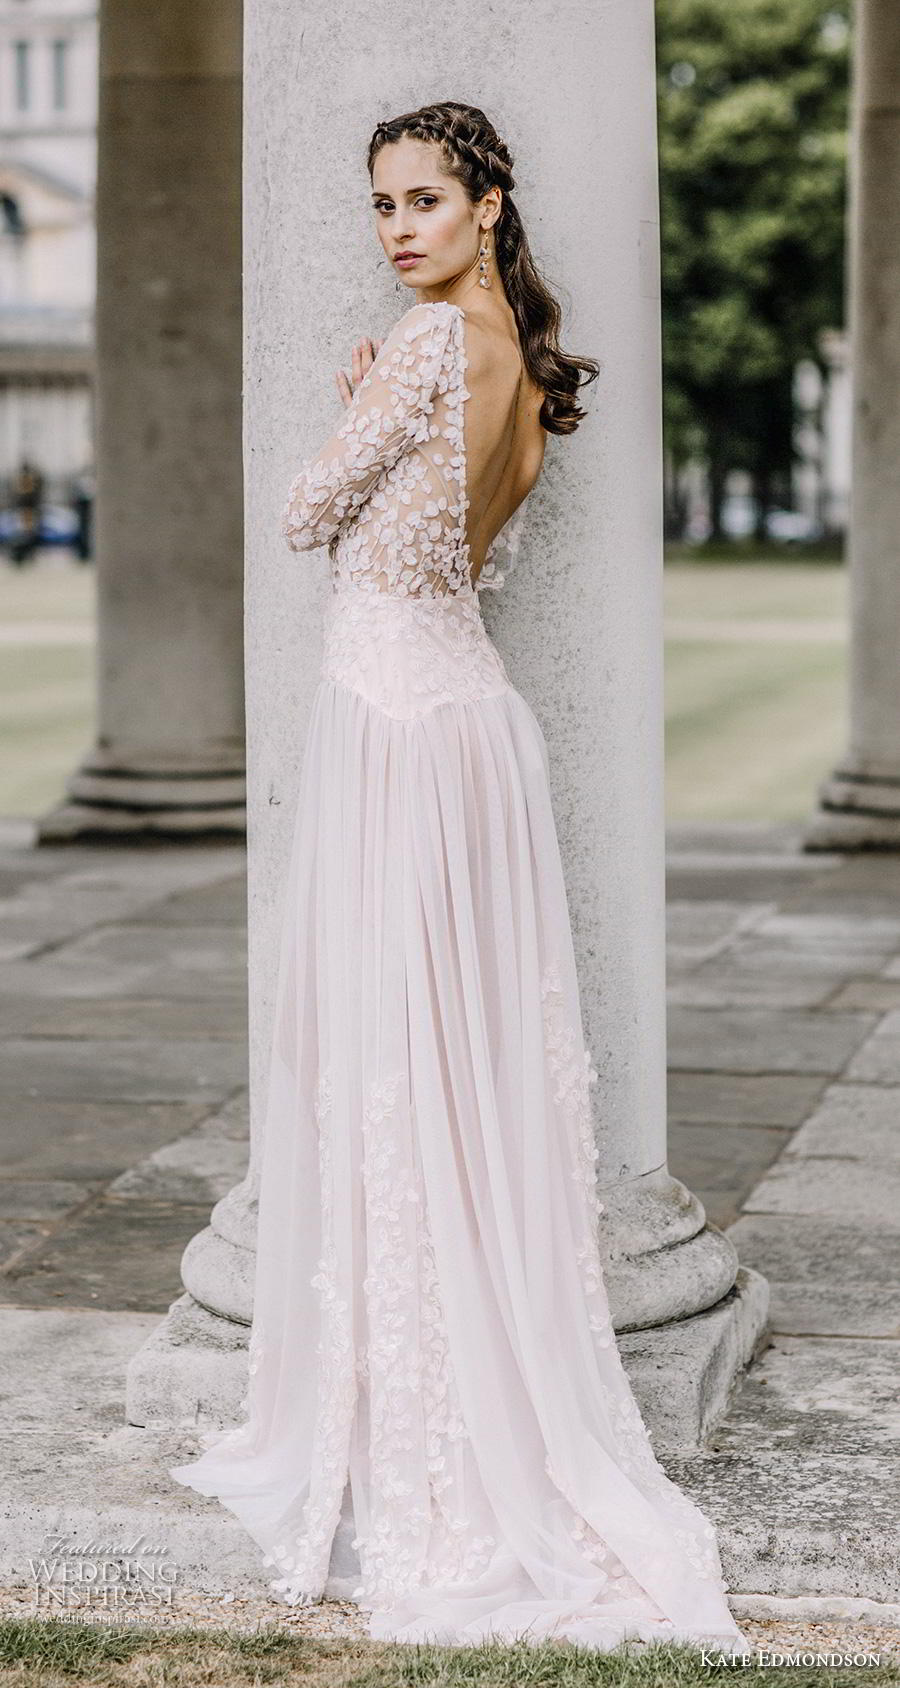 kate edmondson couture bridal half sleeves bateau neck heavily embellished bodice romantic blush soft a line wedding dress backless v back short train (2) bv